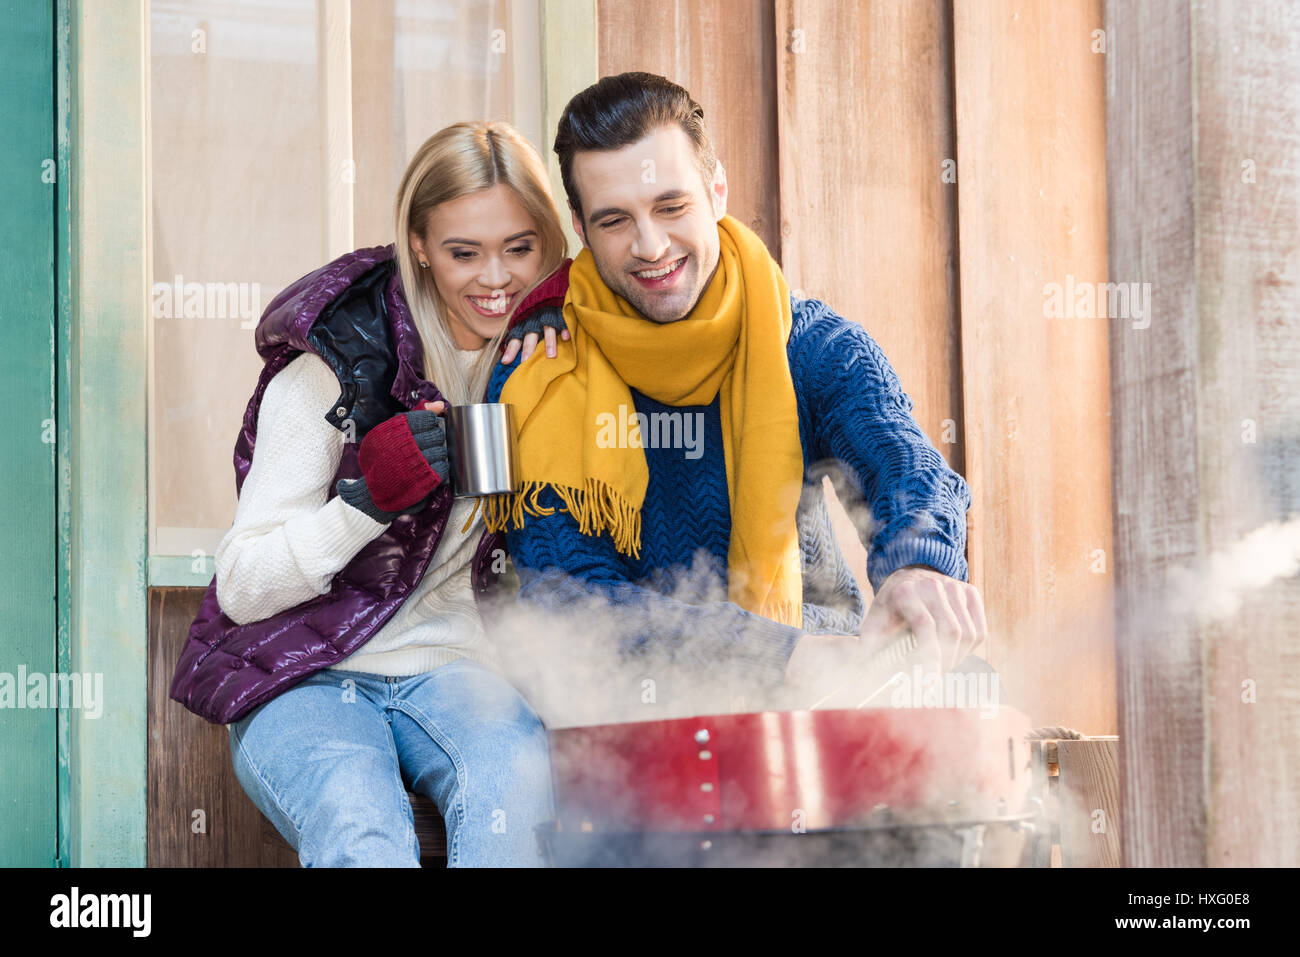 Happy young couple in warm clothes sitting together near grill on porch - Stock Image